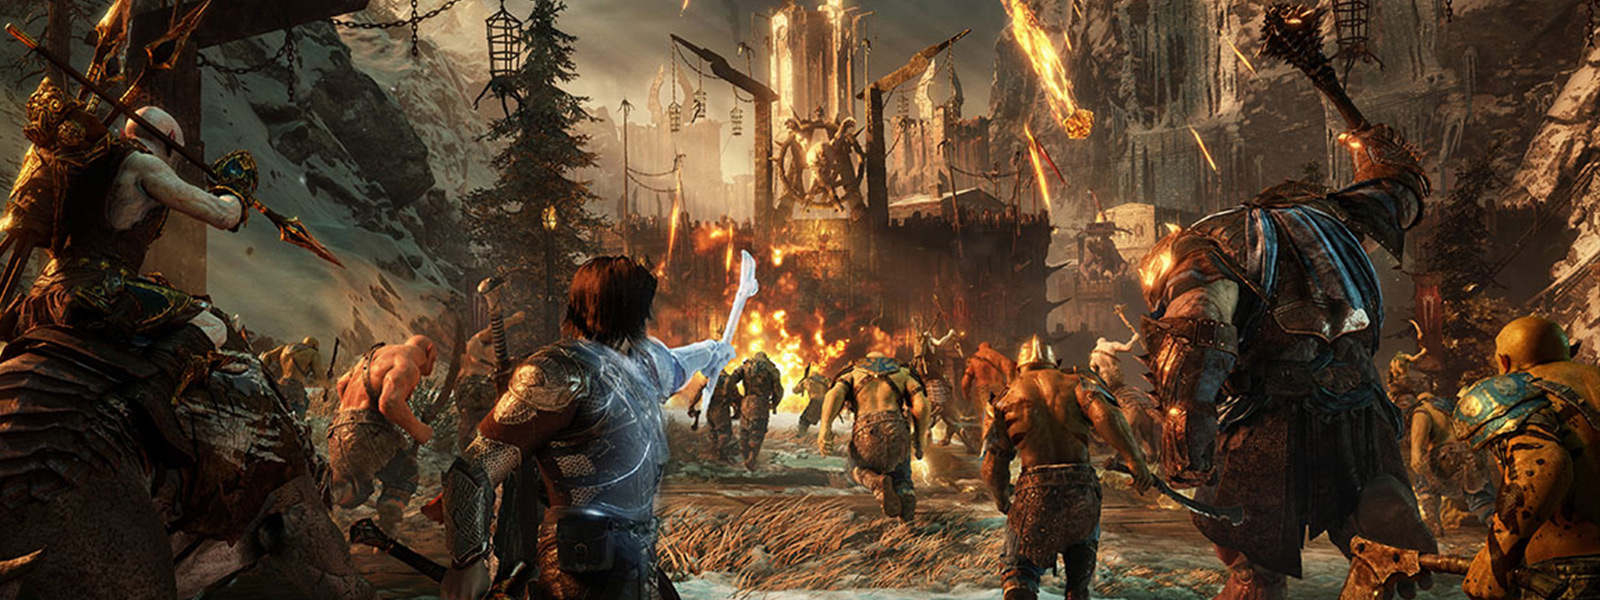 Talion directs army of orcs to attack a gate of Mordor